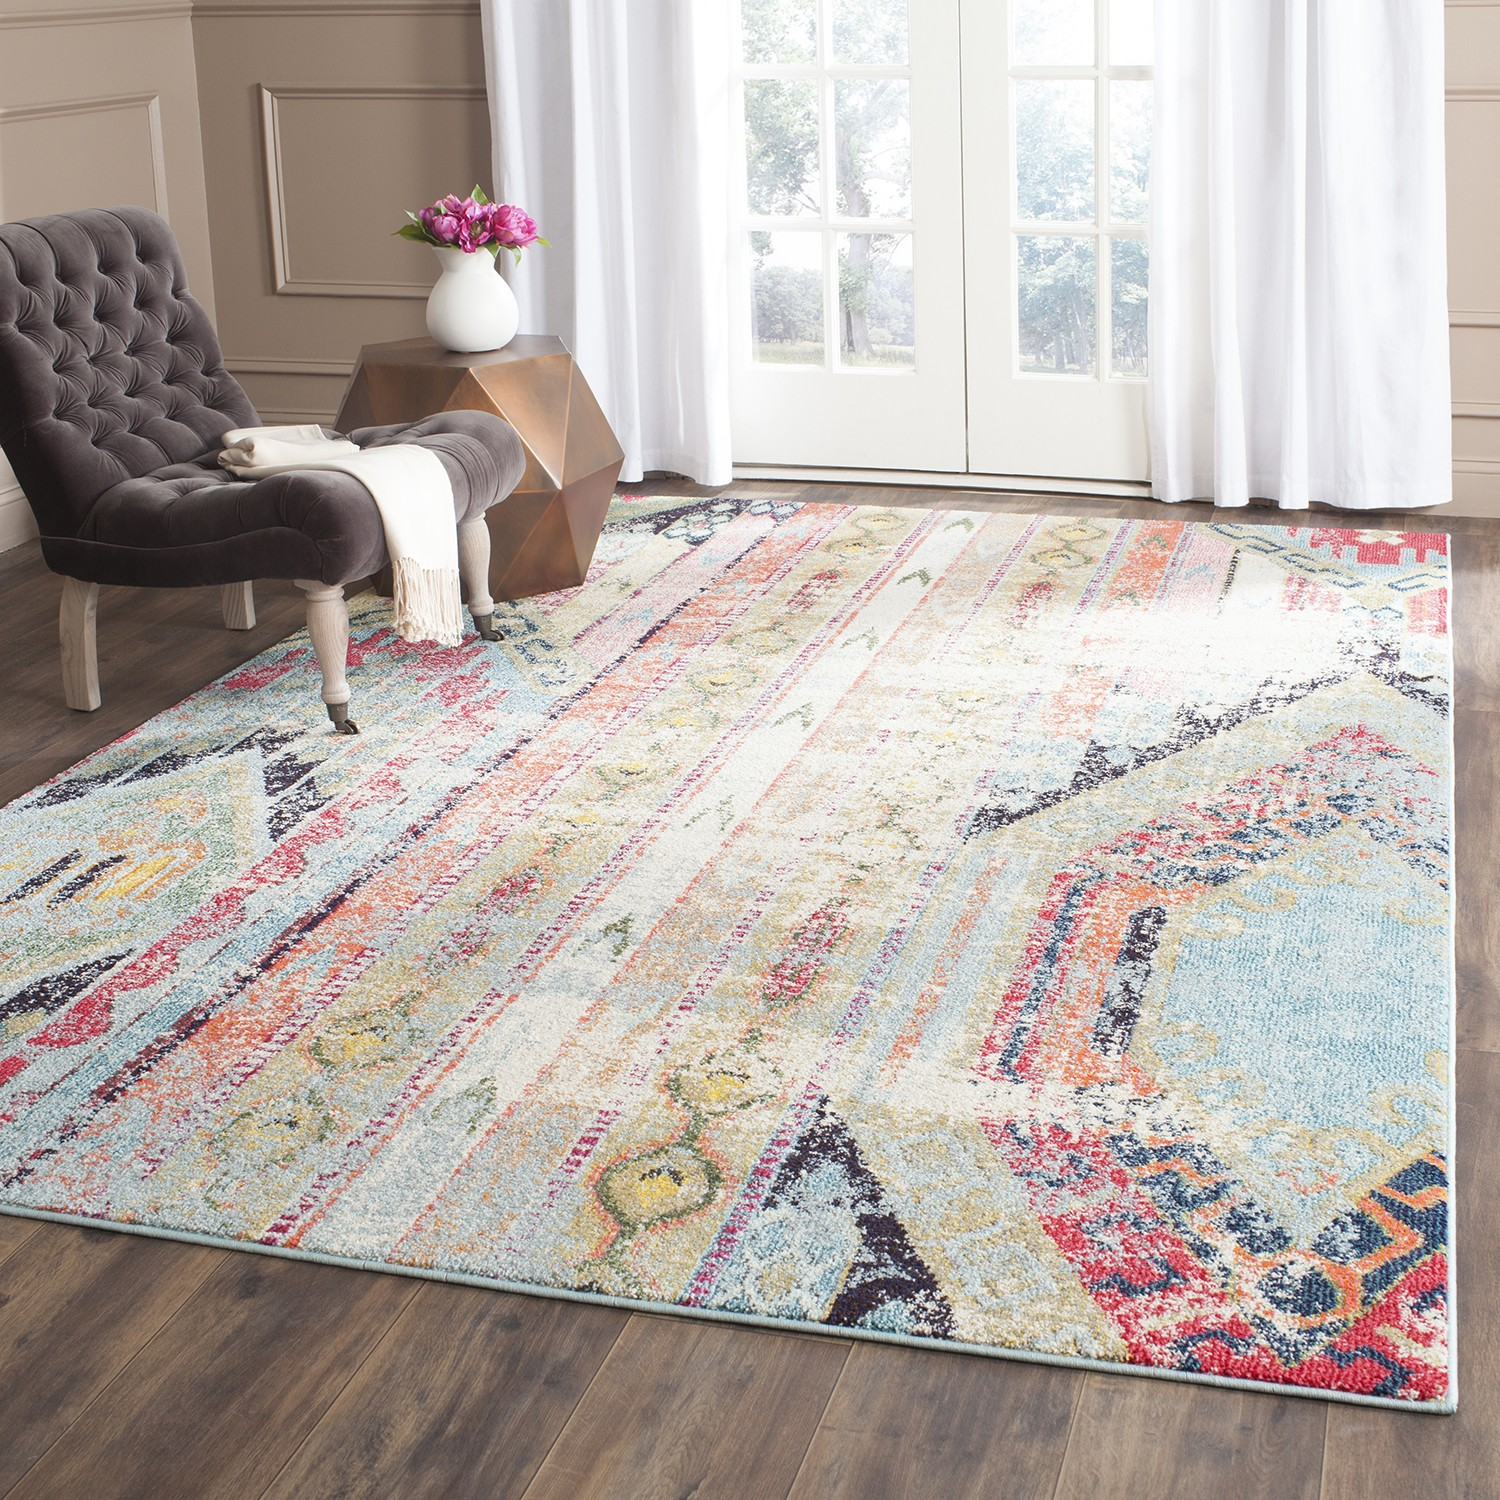 Modern Rugs Modern Area Rugs Carpets At Modern Rugs